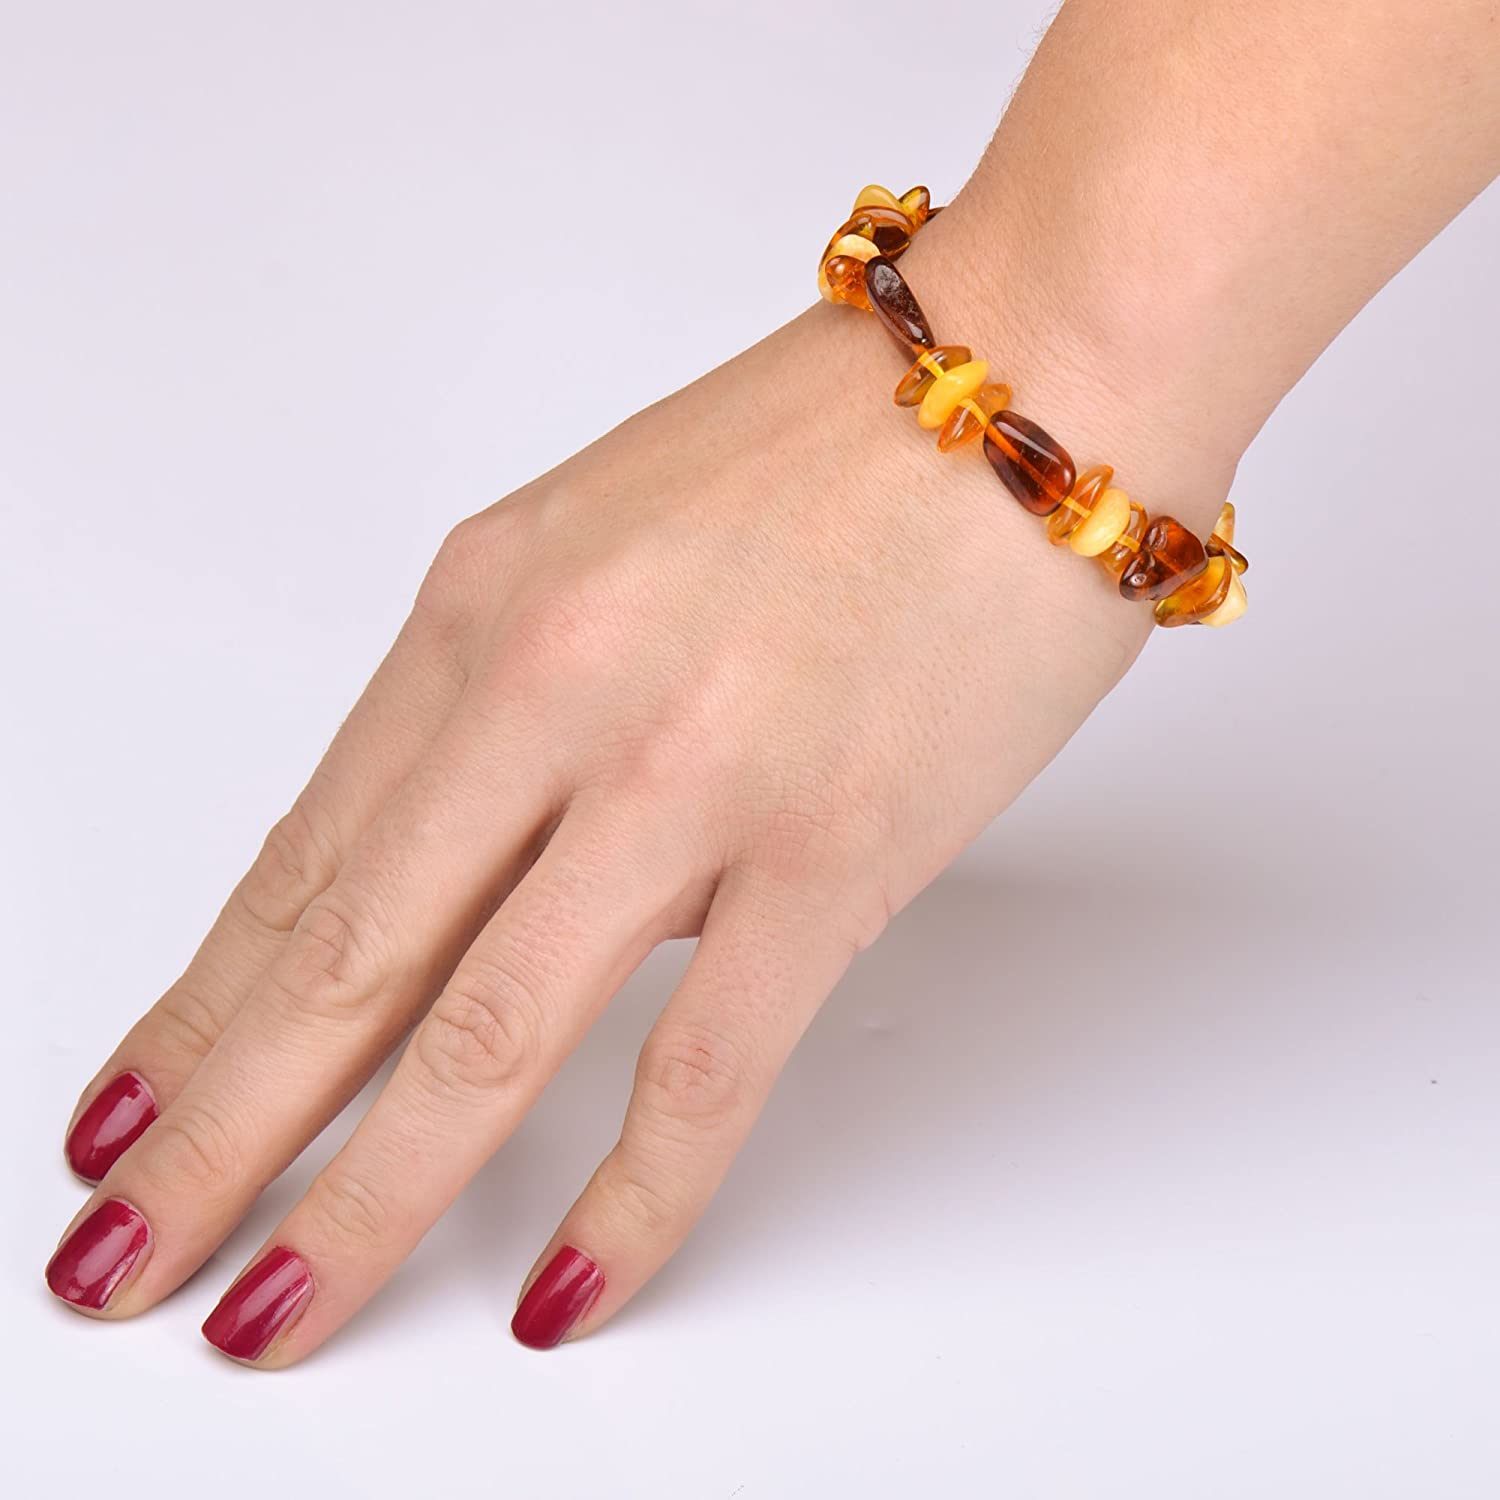 Baltic Amber Bracelet for Adult Genuine Baltic Amber 100/% Genuine Amber Guarantee Elastic Cognac Color 7 inches